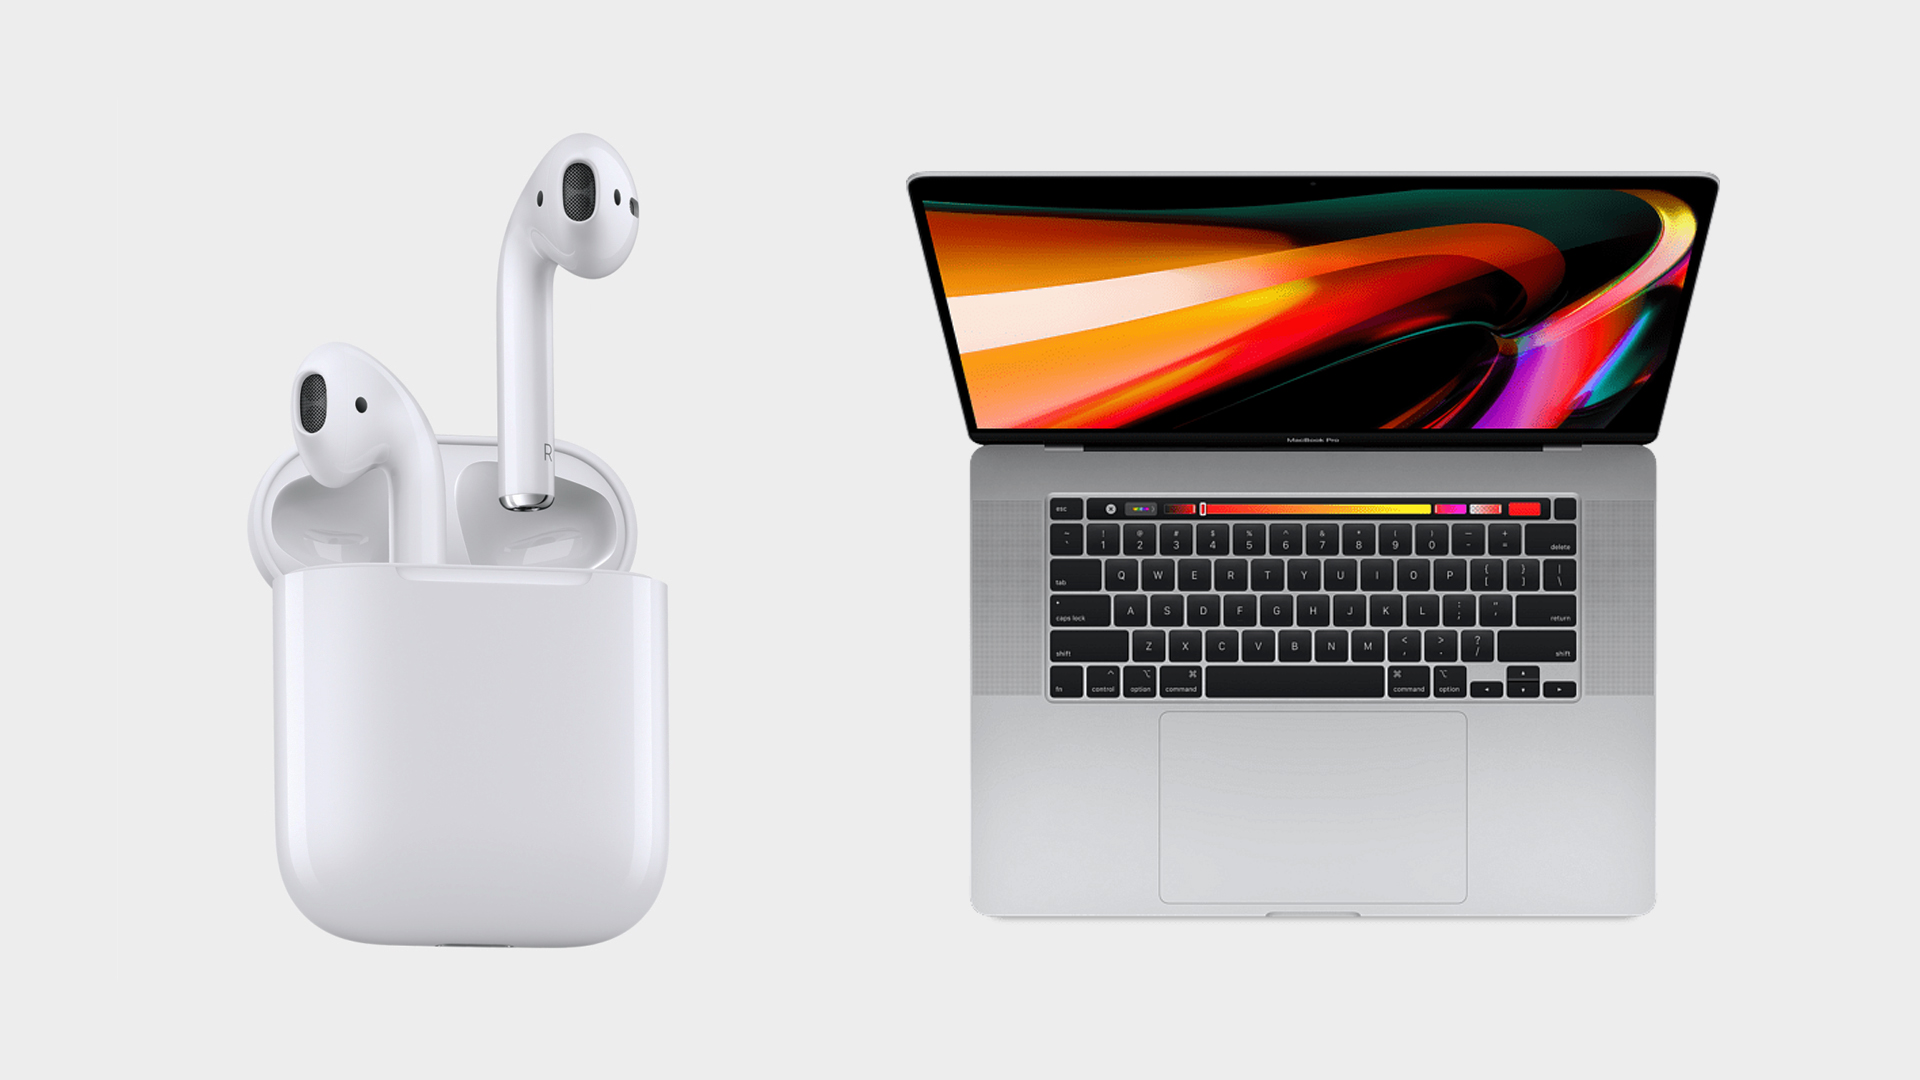 This bizarre AirPods MacBook hack is driving the internet wild ...